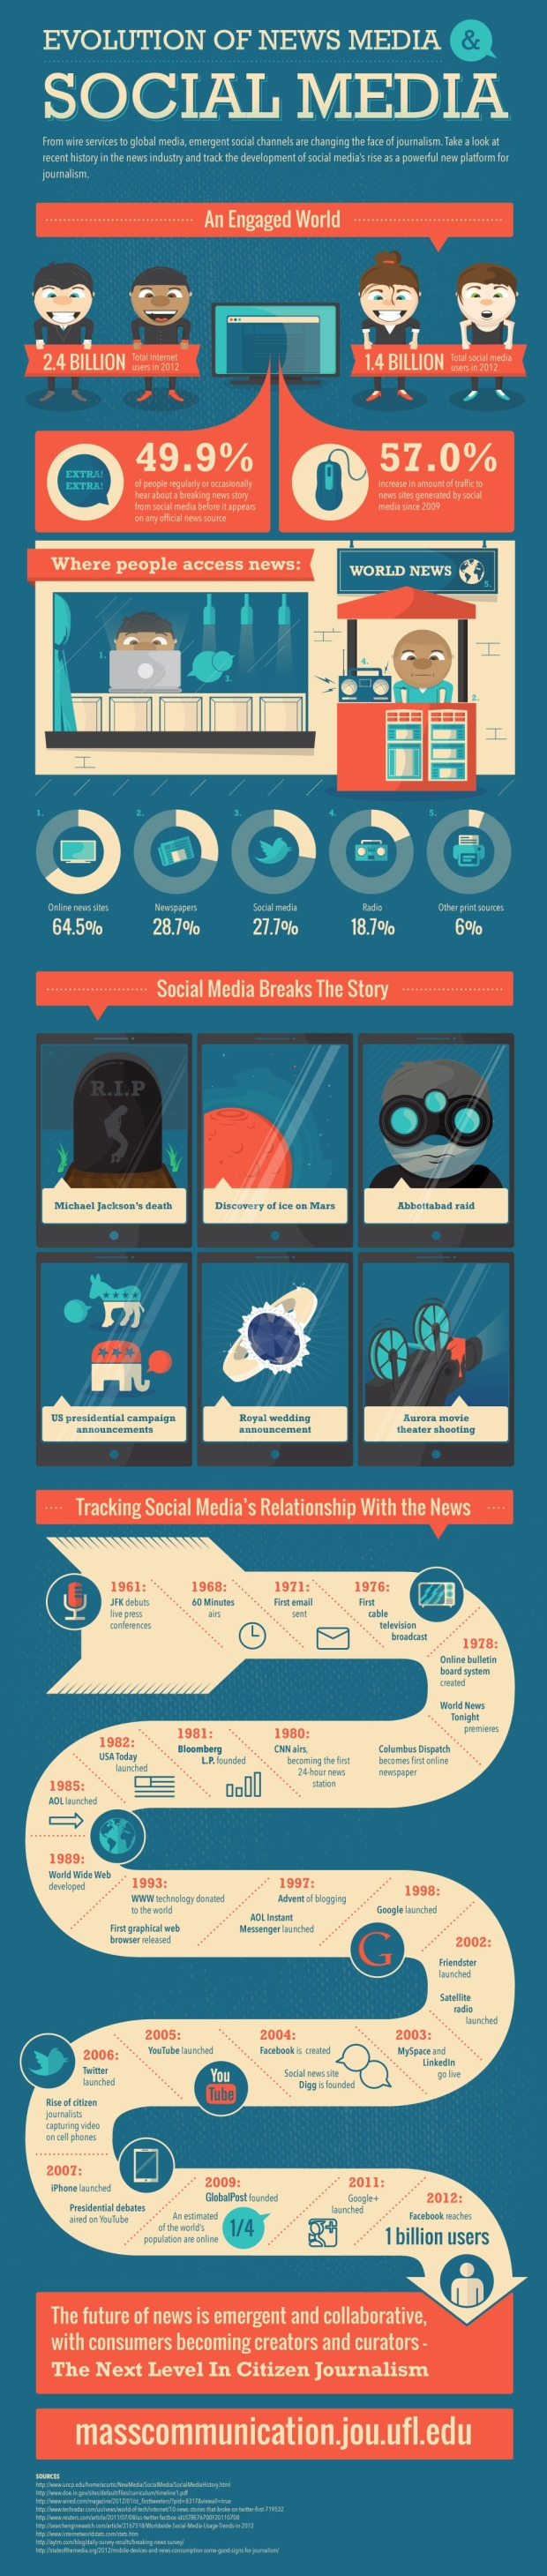 Social Media and Online News